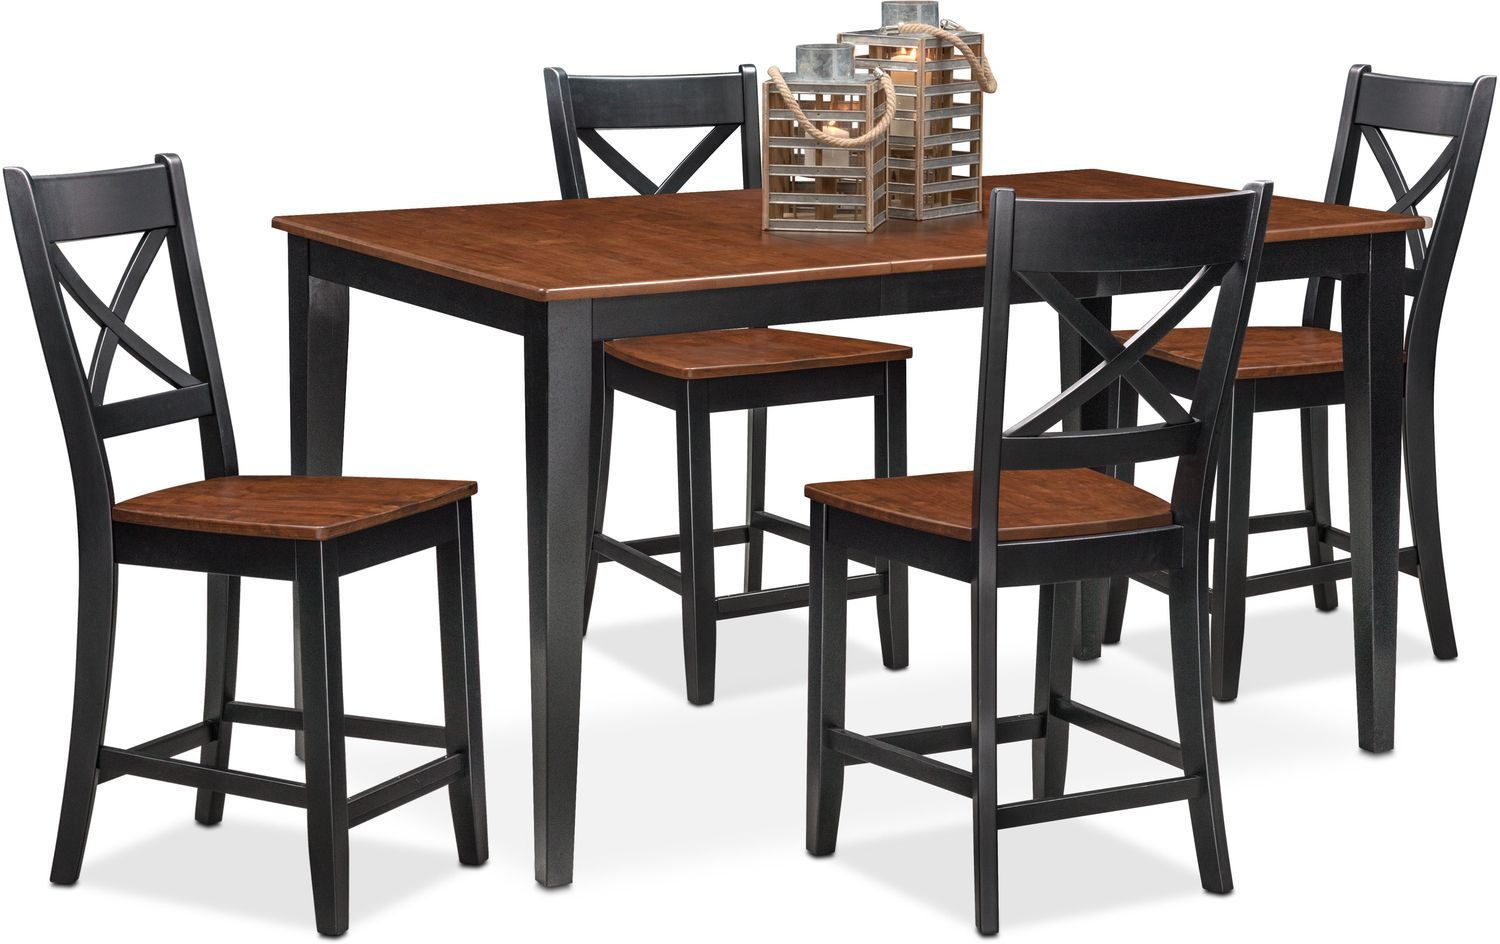 Nantucket Counter Height Table And 4 Side Chairs Black Cherry